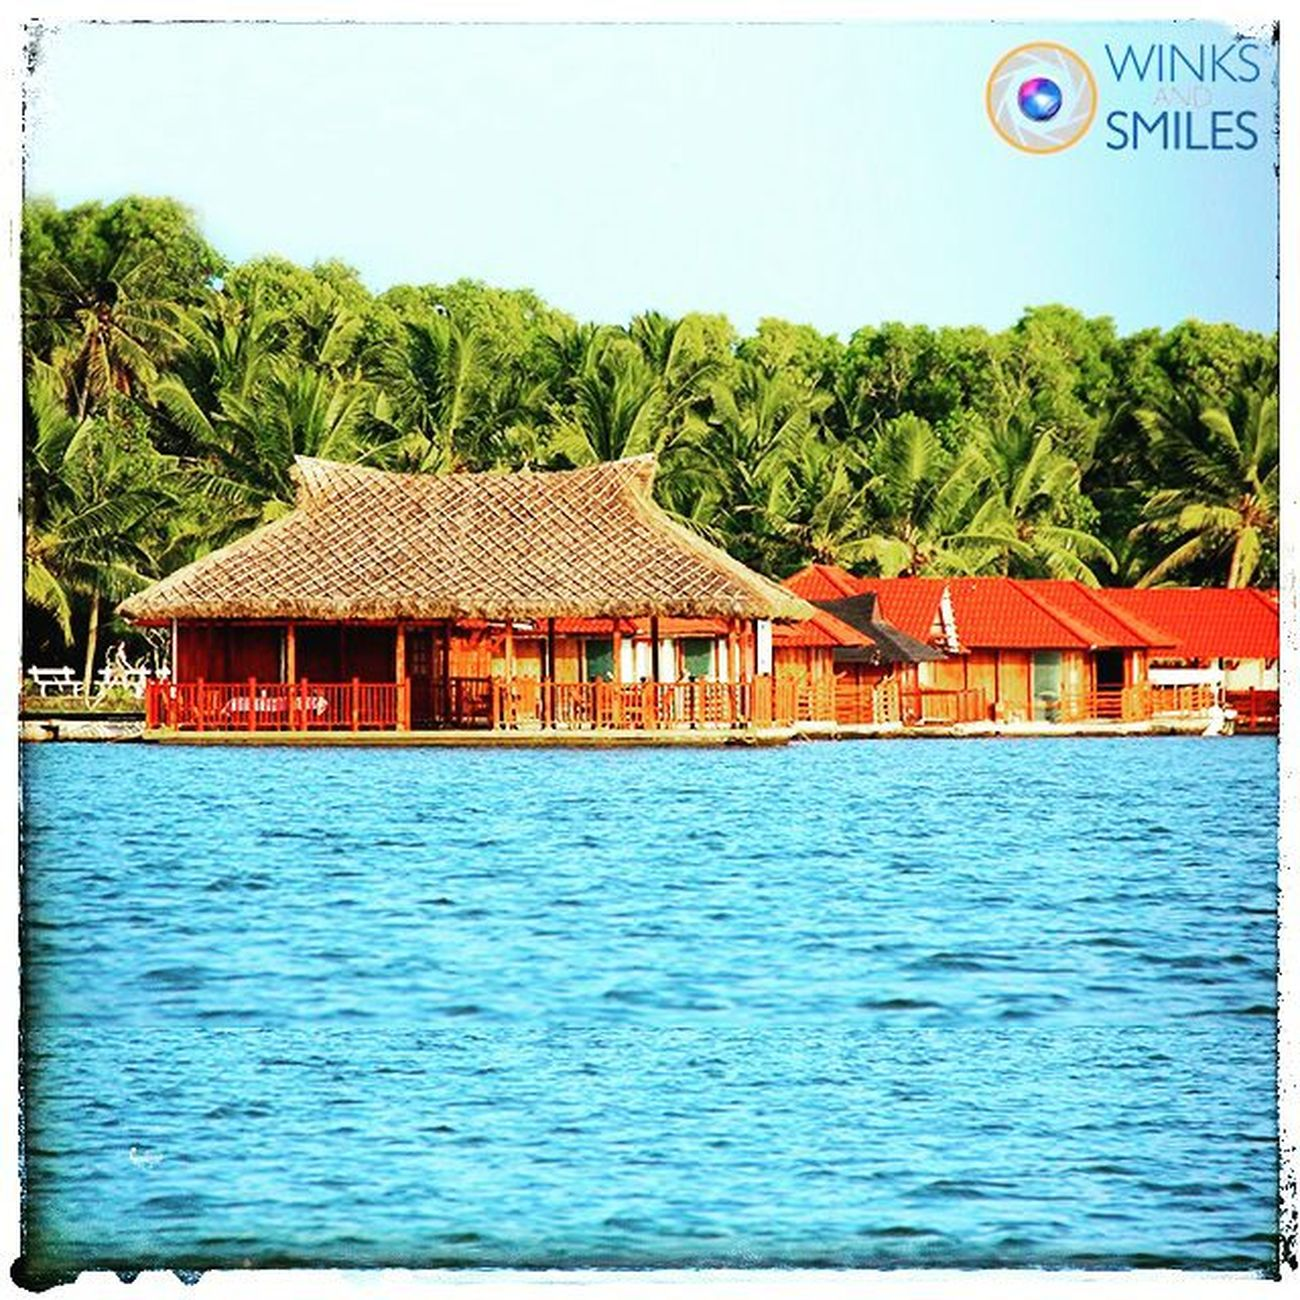 ------------------------------------------------------------------------------------------ 🚣🇮 🇸 🇱 🇦 🇳 🇩 🔸 🇷 🇪 🇸 🇴 🇷 🇹 🇸🚣 ------------------------------------------------------------------------------------------ THIS IS NOT IN CARIBBEAN. IT'S IN OUR OWN GOD'S OWN COUNTRY, KERALA 🌴🌴🌴🌴🌴 Enveloped in serene Kerala backwaters, flanked by the Arabian Sea on the East and the majestic towering Ghats to the West, opening out to the ocean and a dream golden beach, Island Resorts are a tropical paradise. Swaying coconut palms, endless golden sands, the ultramarine of the ocean, emerald backwaters, crimson sunsets and lush green vegetation create a magical ambience around you. Island resorts are the ideal remote getaway location for a quiet holiday in spectacular natural surroundings. You can choose between floating cottages and land cottages for accommodation at charming Kerala ayurveda resort and enjoy a boat cruise along the palm-fringed shores of bewitching backwaters. Kerala GodsOwnCountry Poovar Poovarislandresort Ig_kerala India Nature India Sea Incredibleindia Ayurveda Touristspot Backwaters Sea Landscapephotography Indiabestpic Convexrevolution Followforfollowback Likeforlikes Indianphotographer Photographers_of_india Iger Click_india_click Natgeo natgeotravellerindia instaresorts framesofindia explorethroughcamera